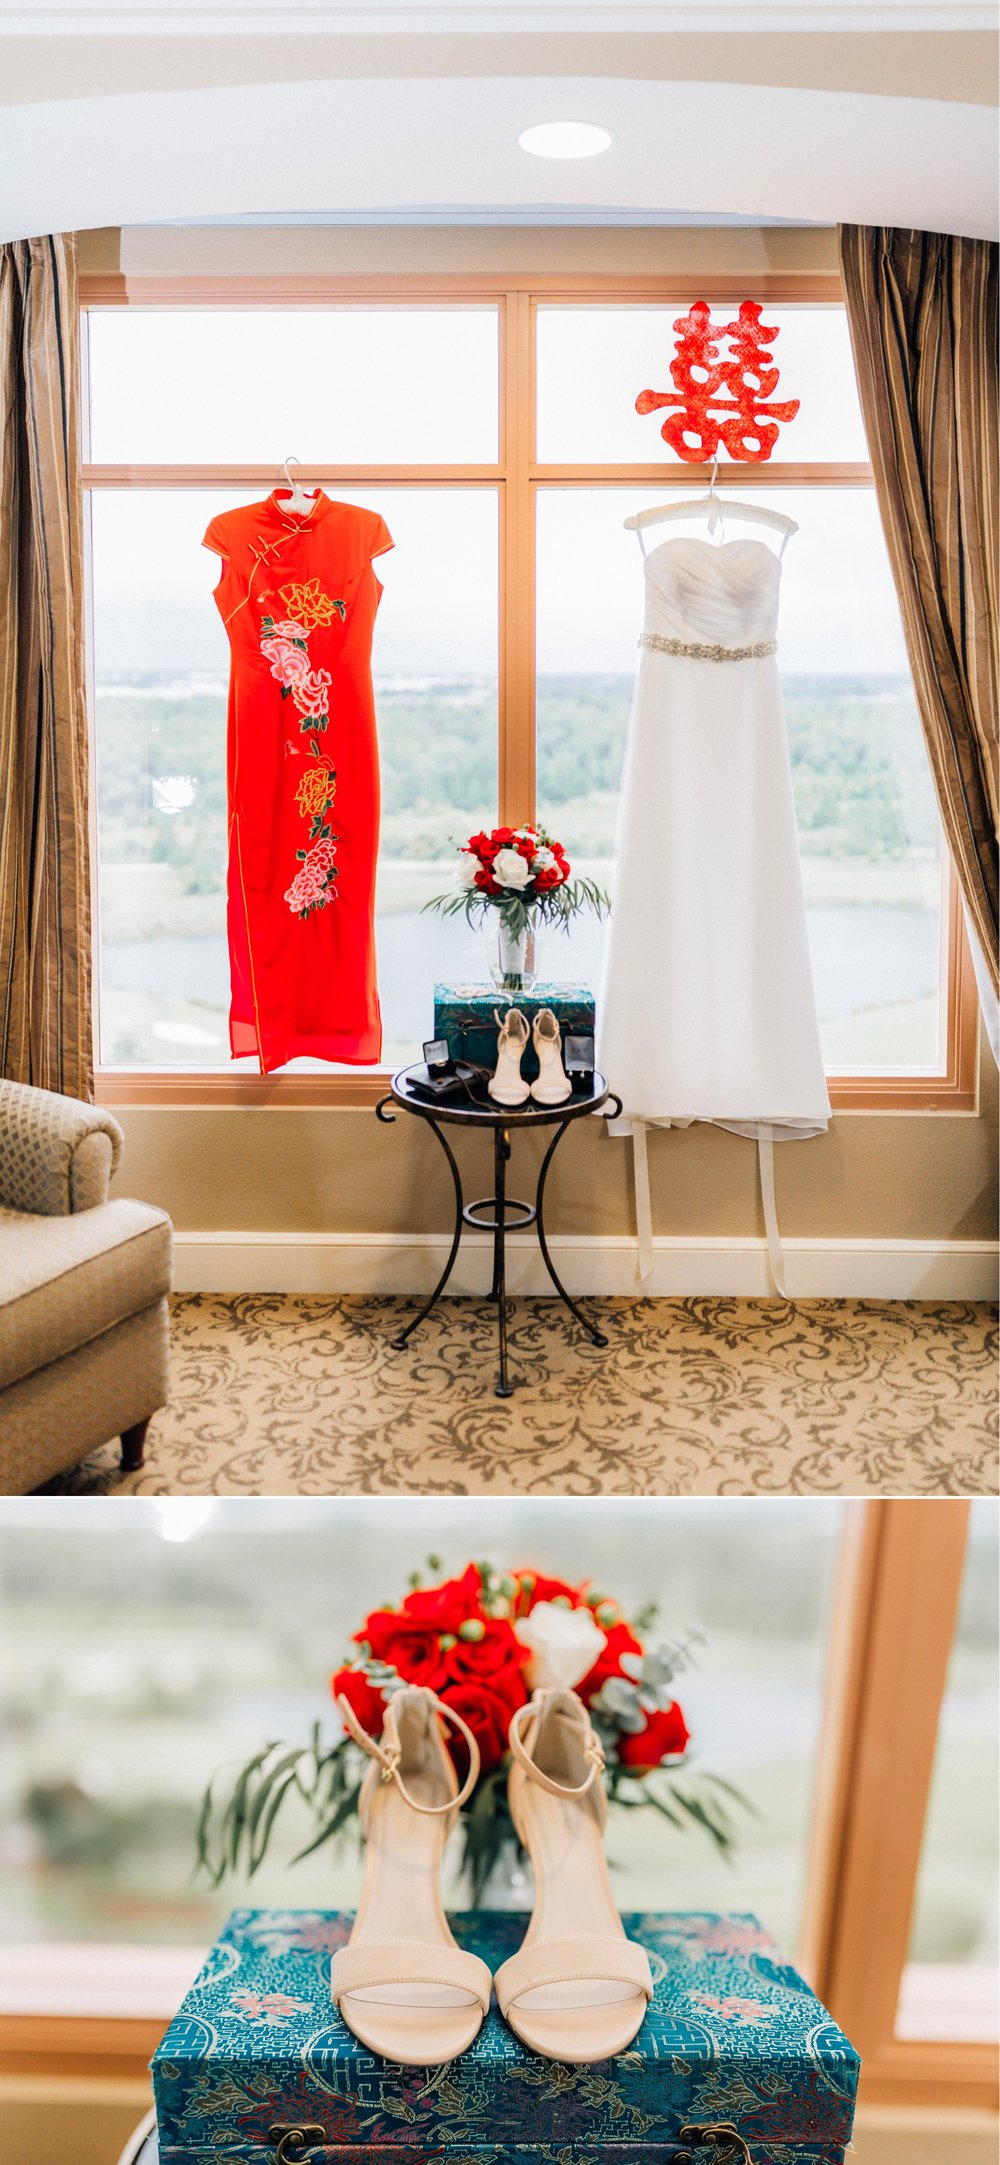 Lakehouse Lake Nona Wedding- Modern Colorful Red Multicultural- Susan + Manolo 3.jpg